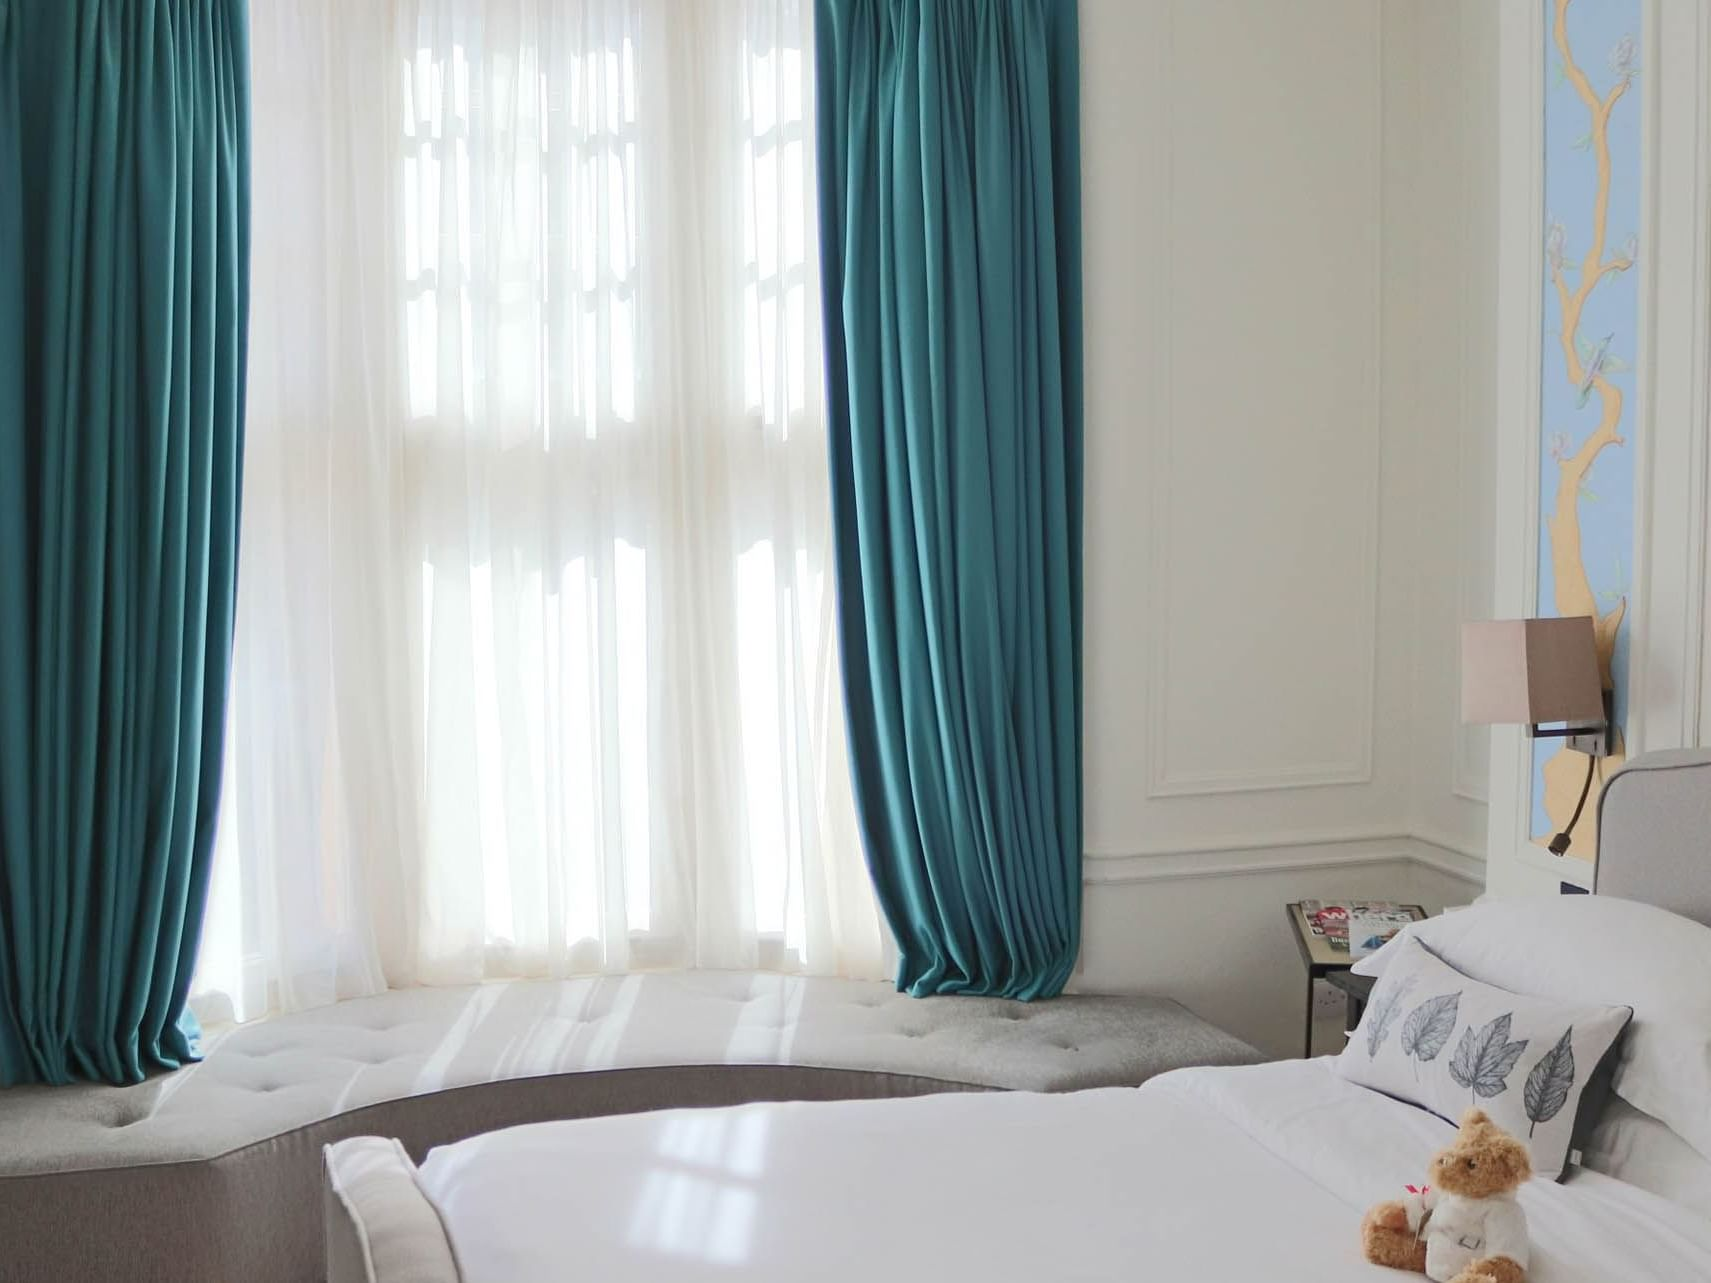 Club room with window seat at Sloane Square Hotel